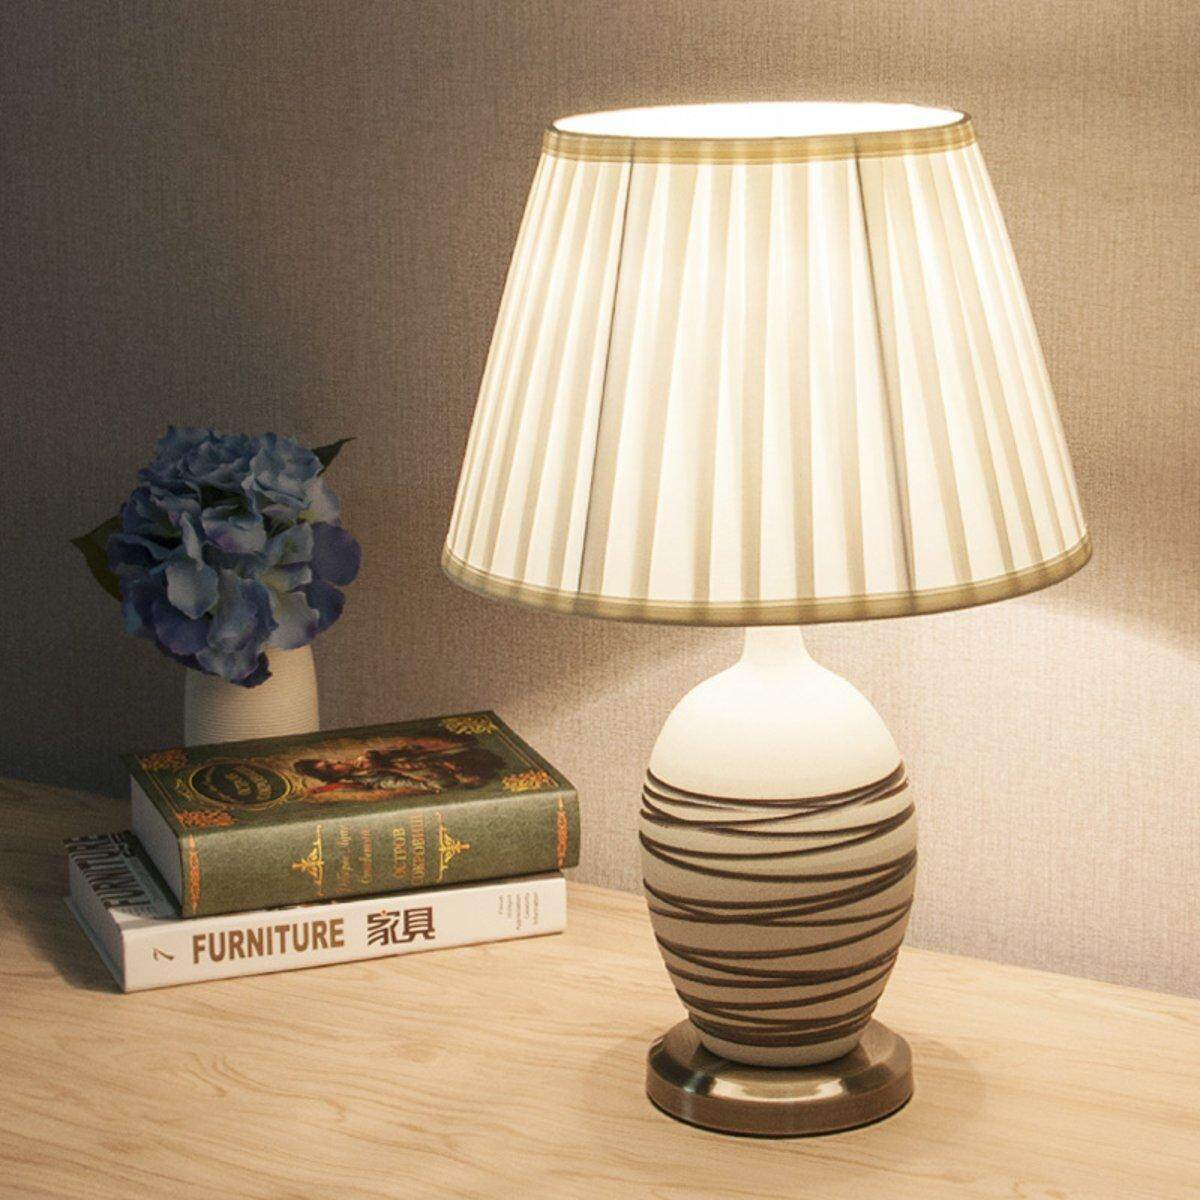 6 To 20 Fabric Box Pleat Lamp Shade Table Light Lampshade Mink Cream Ivory 350mm By Moonbeam.